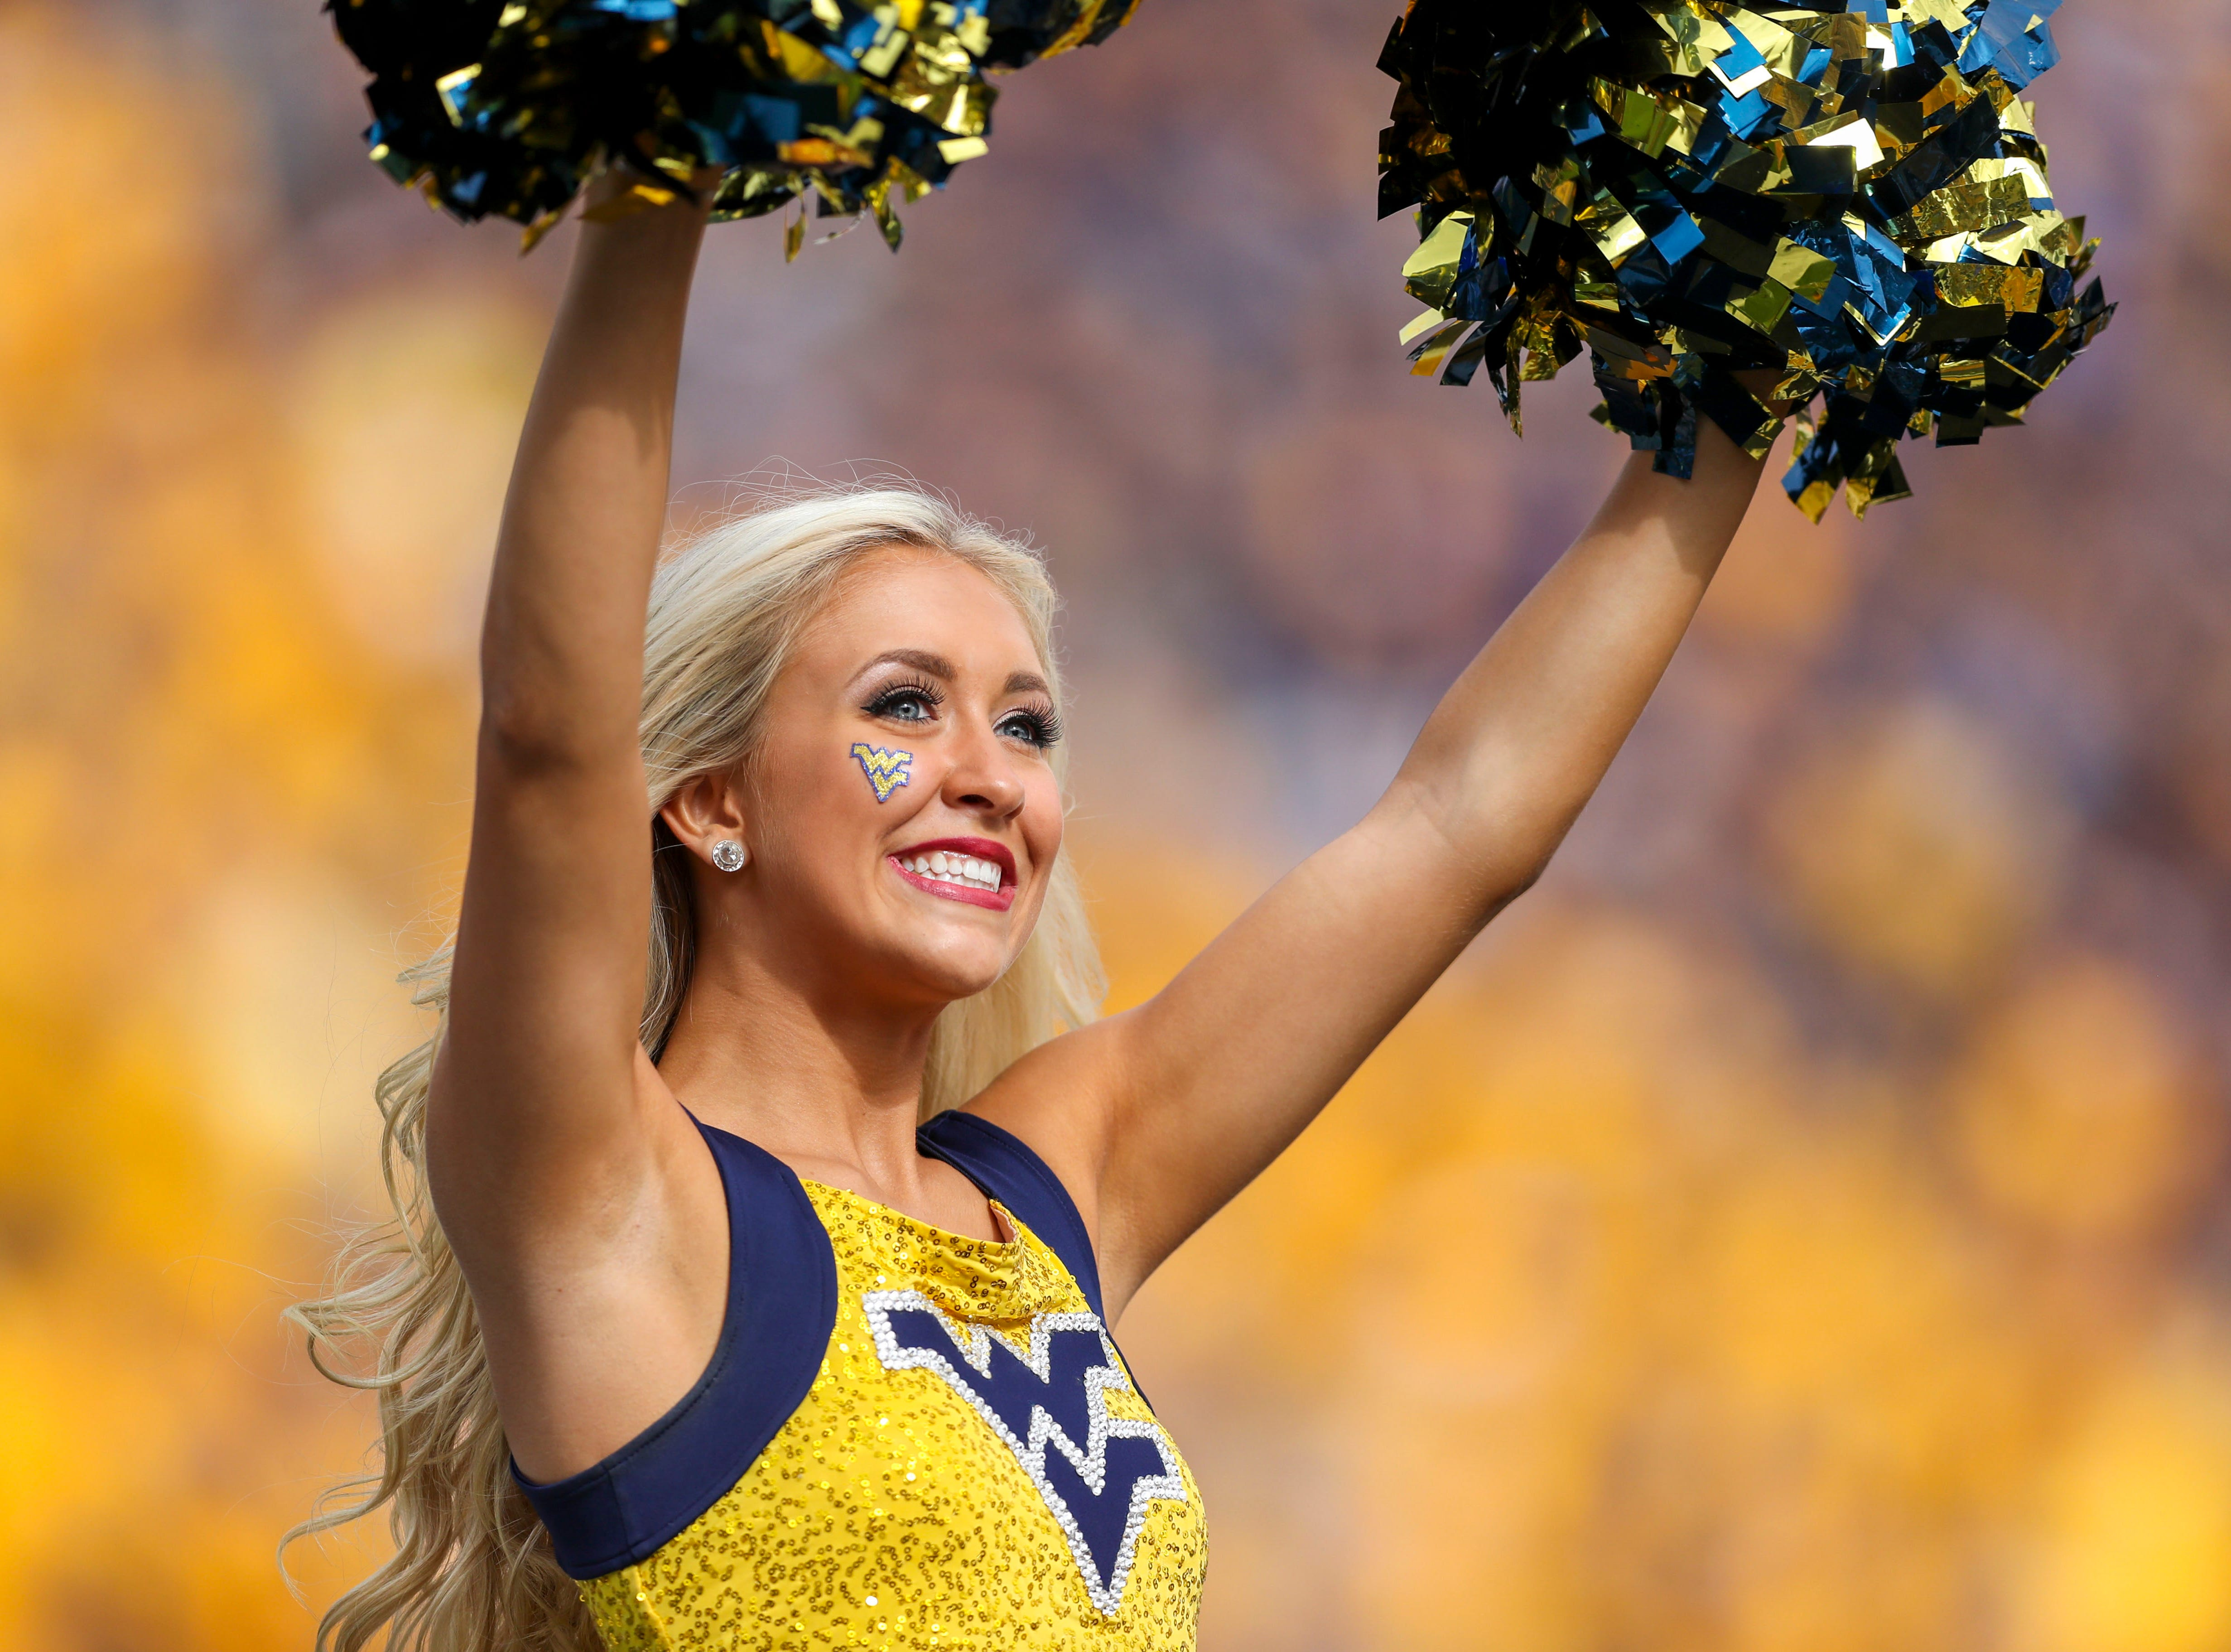 Week 4: A West Virginia Mountaineers cheerleader performs during the first quarter against the Kansas State Wildcats at Mountaineer Field at Milan Puskar Stadium.